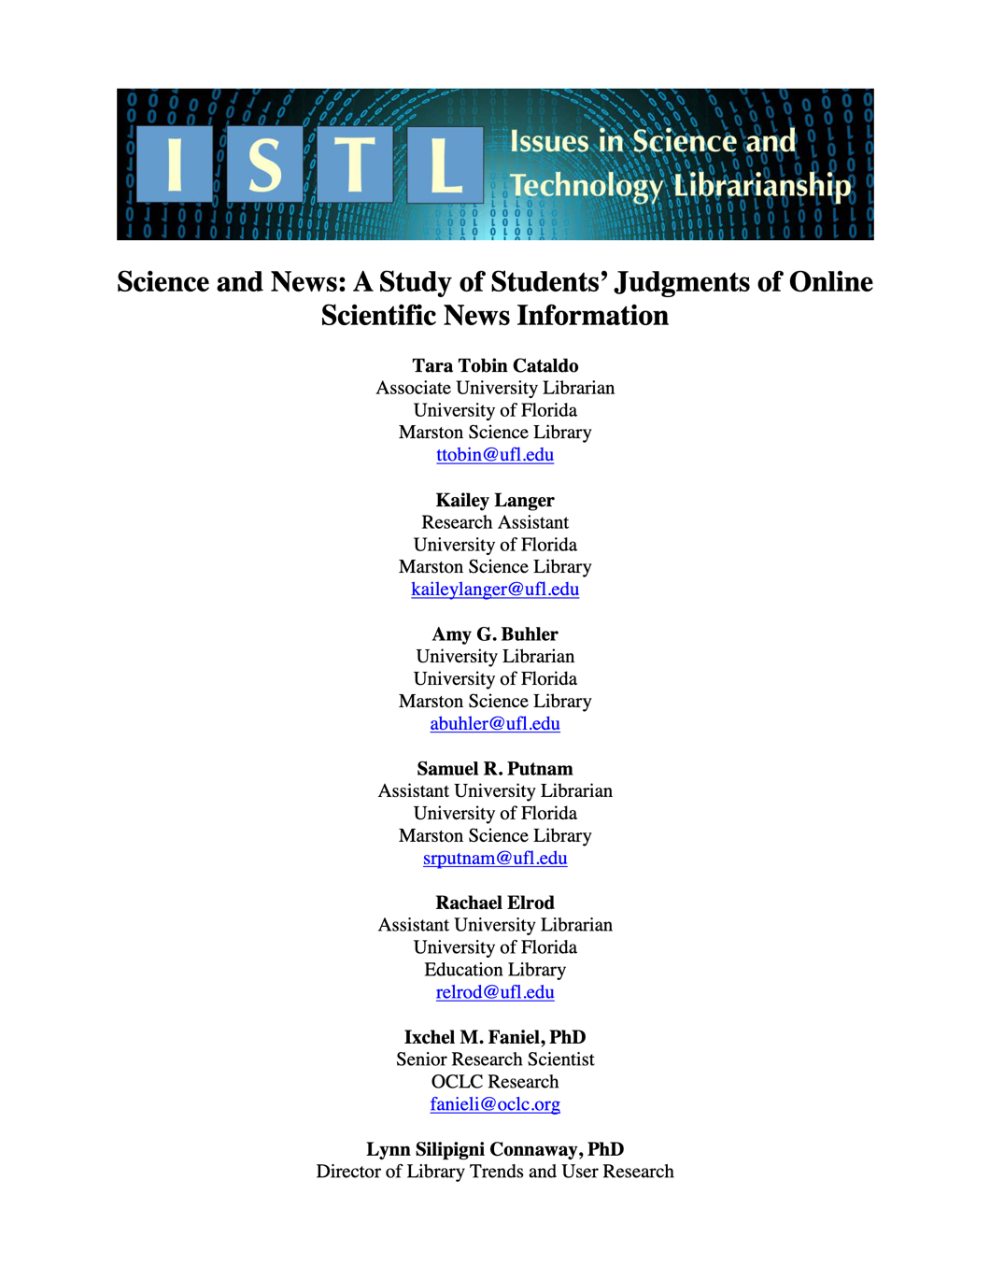 A Study of Students' Judgments of Online Scientific News Information